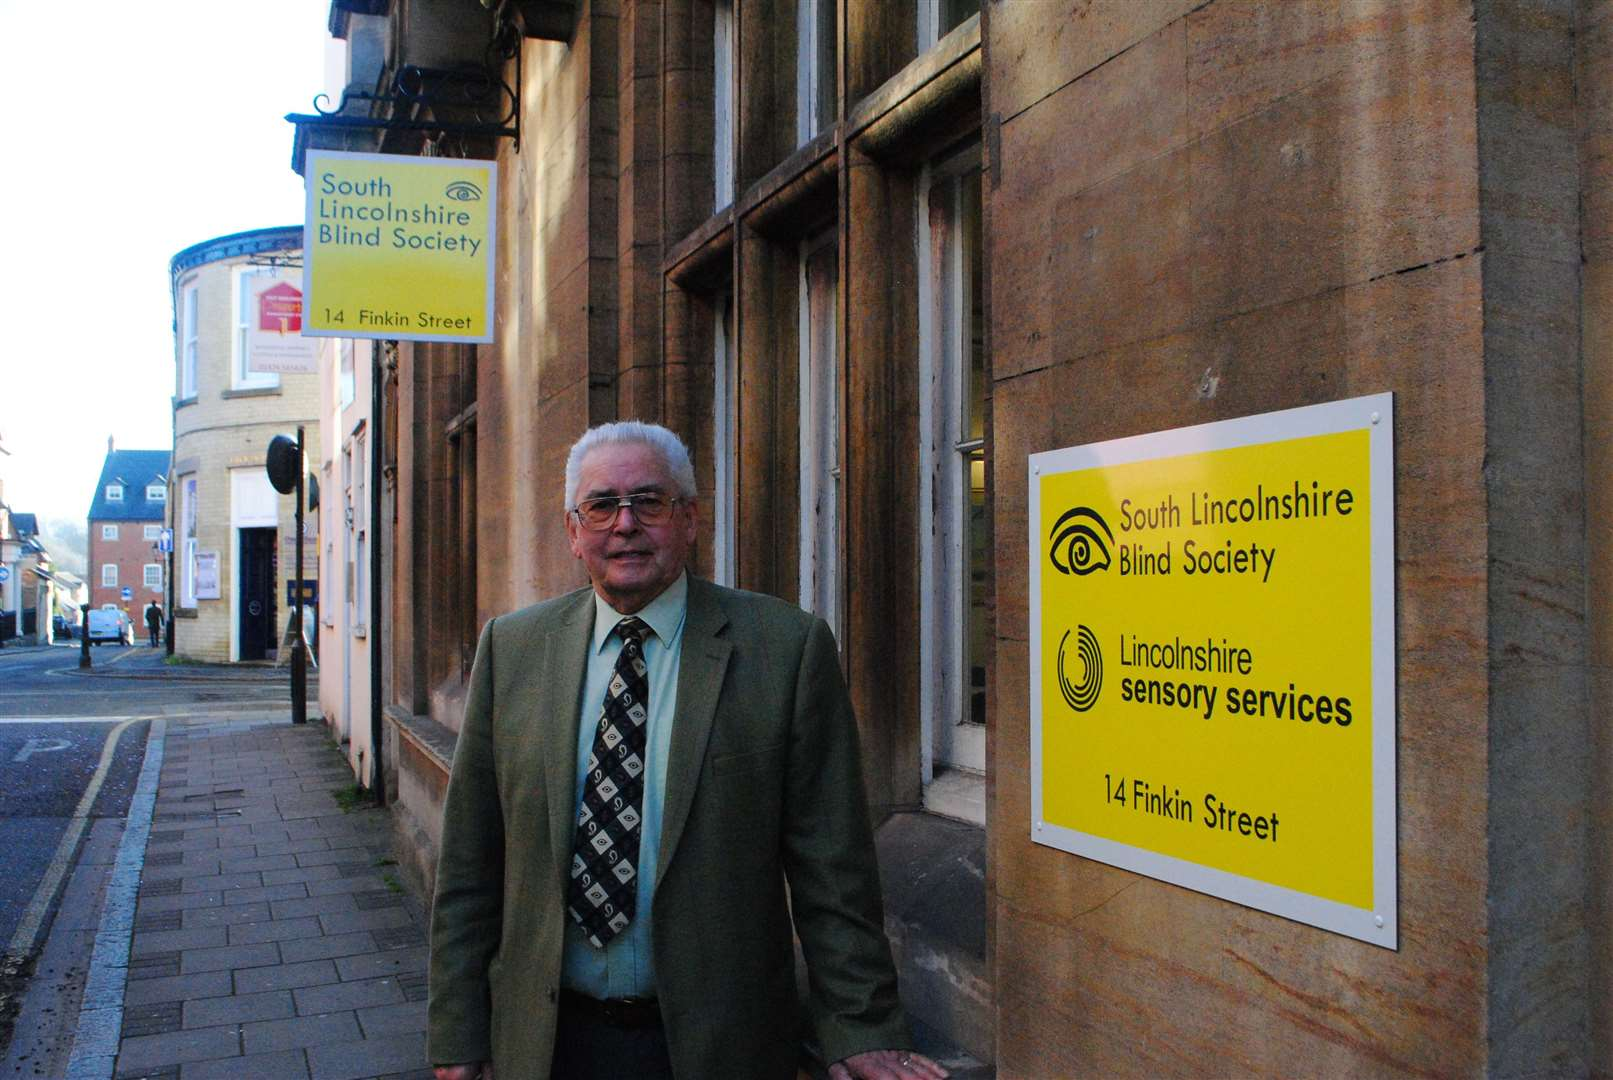 Malcolm Swinburn, chief executive of South Lincolnshire Blind Society, and new chairman of Grantham Business Club. (7468943)